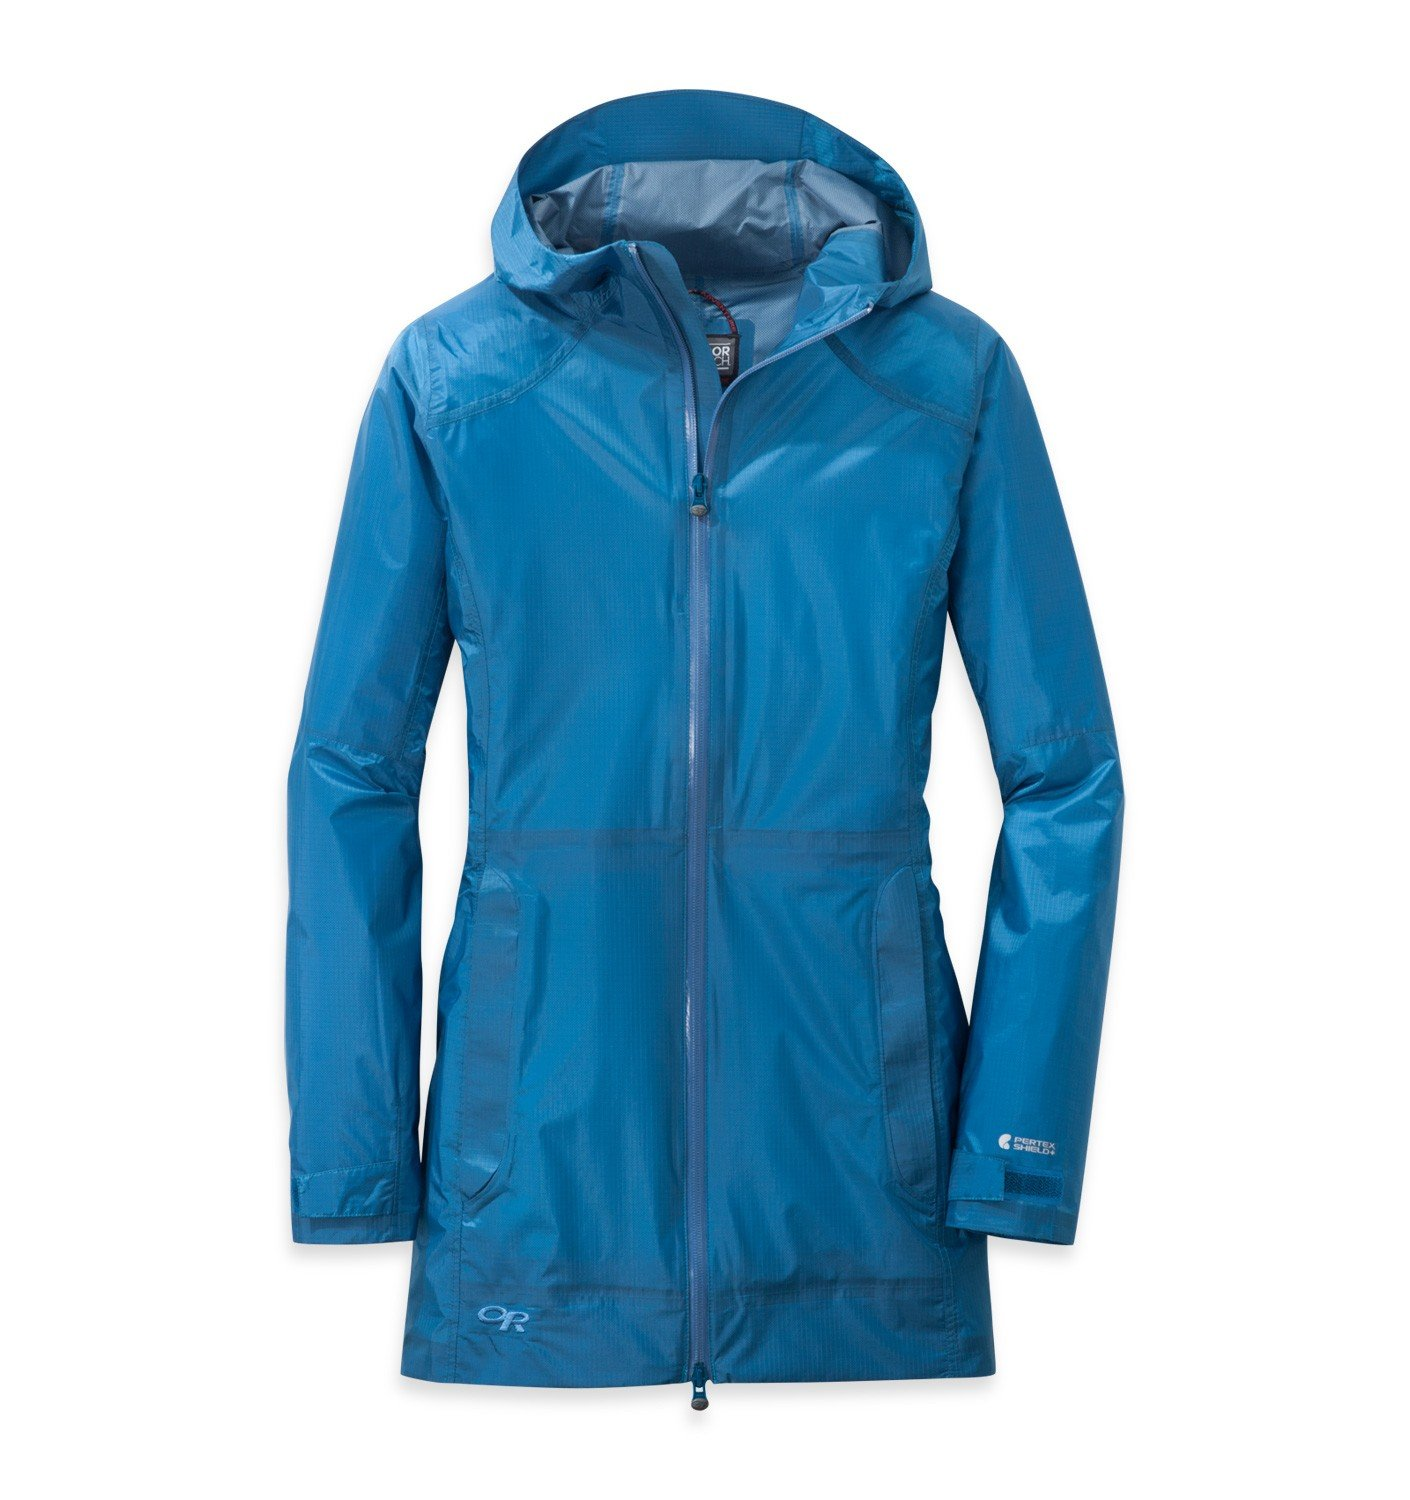 Amazon.com: Outdoor Research Womens Helium Traveler Jacket: Sports & Outdoors